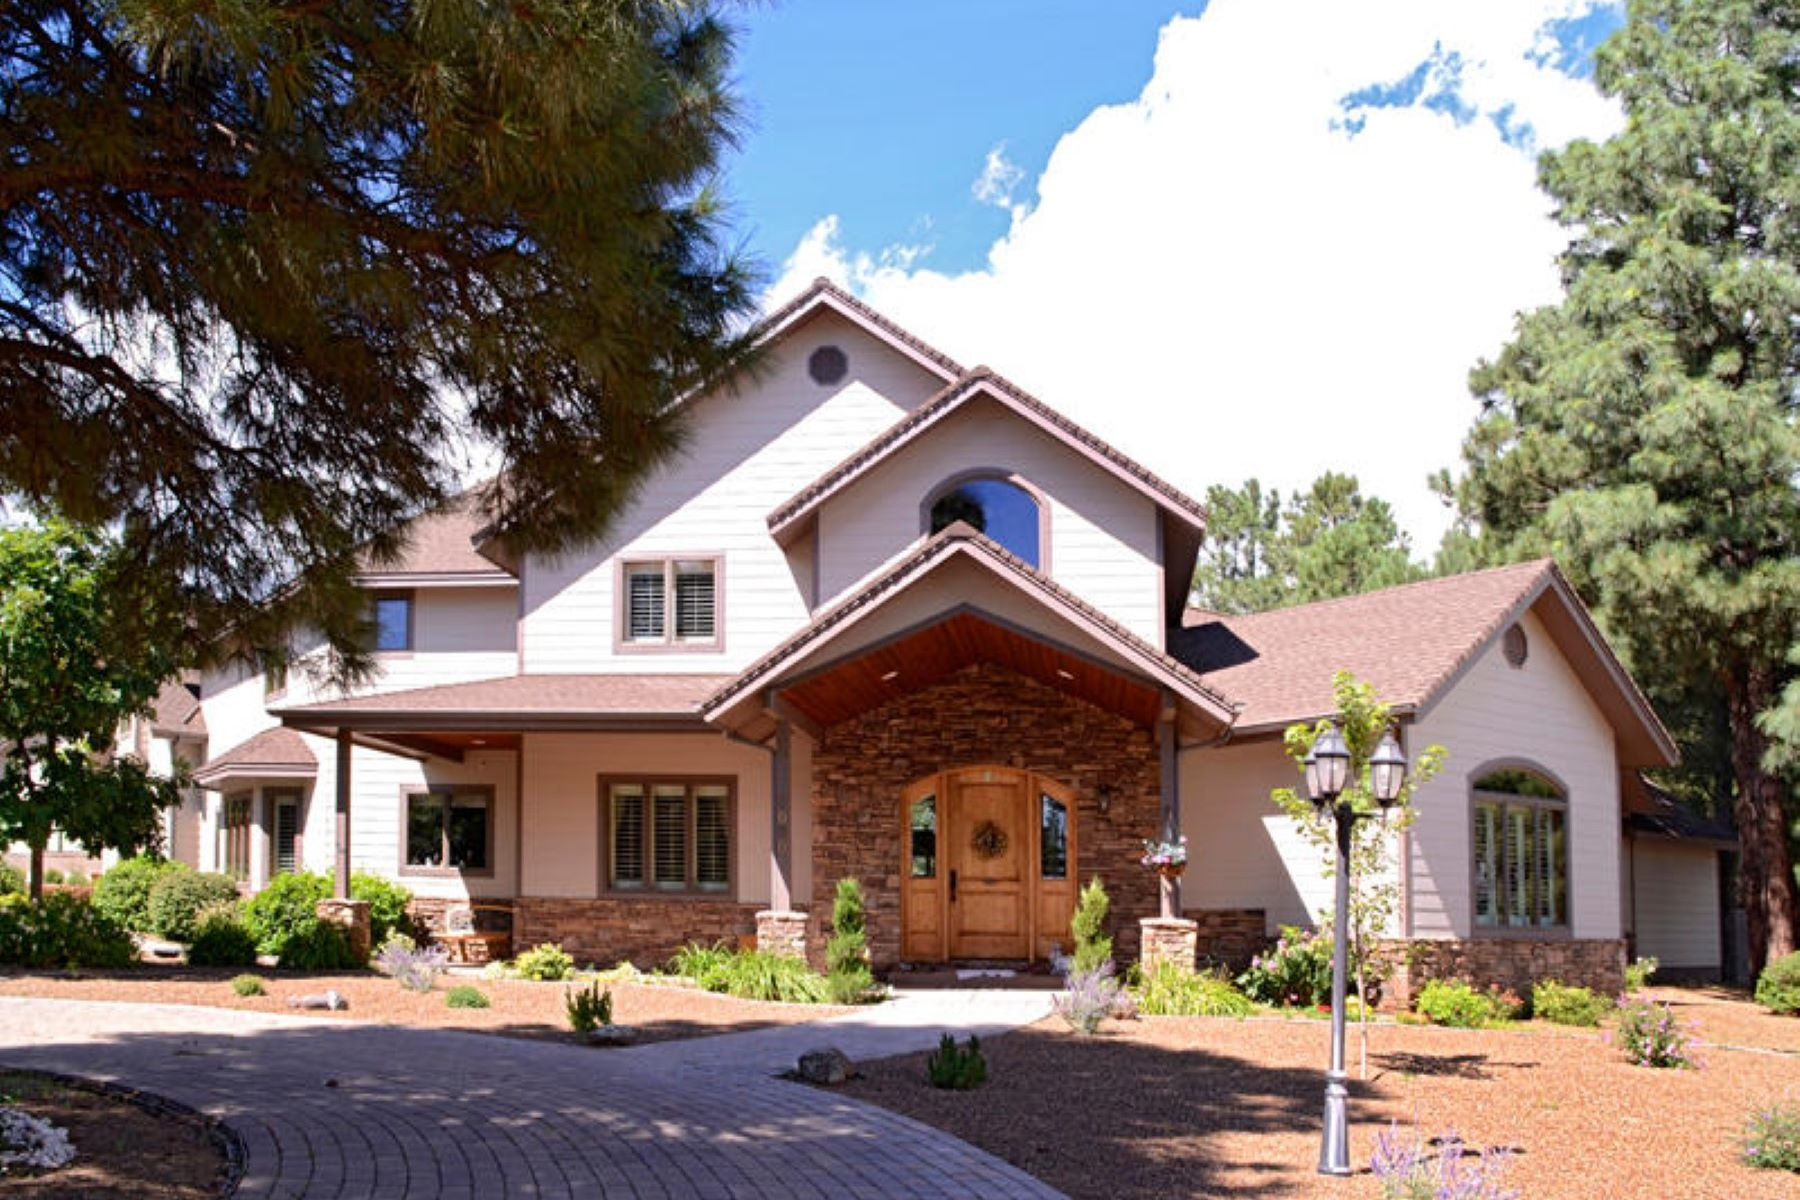 Casa Unifamiliar por un Venta en Luxury Forest Home 7050 N Oakwood Pines DR, Flagstaff, Arizona, 86004 Estados Unidos